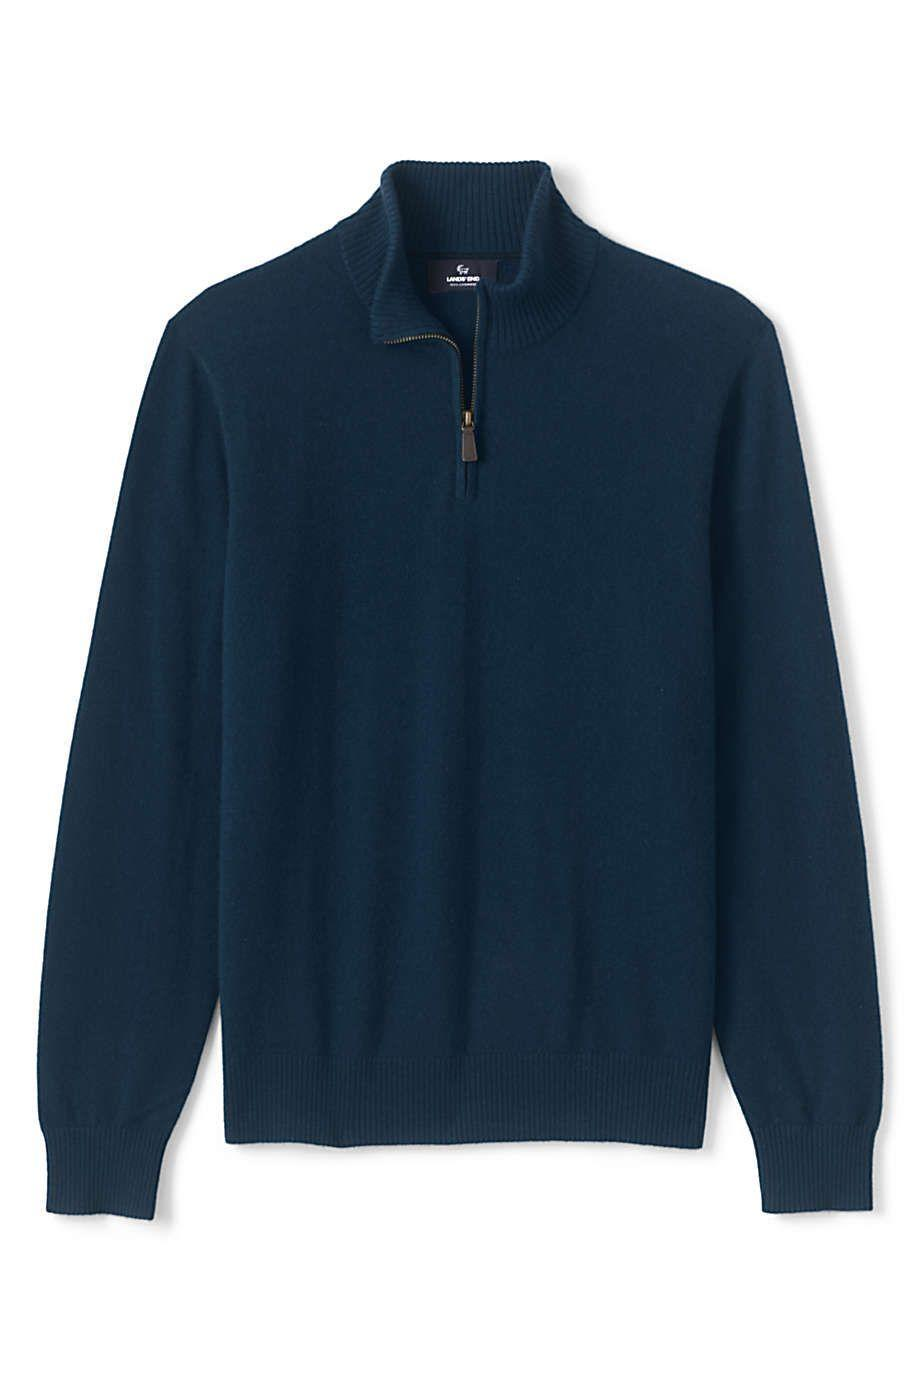 """<p><strong>Lands End</strong></p><p>landsend.com</p><p><strong>$199.95</strong></p><p><a href=""""https://go.redirectingat.com?id=74968X1596630&url=https%3A%2F%2Fwww.landsend.com%2Fproducts%2Fmens-cashmere-quarter-zip%2Fid_293453&sref=https%3A%2F%2Fwww.cosmopolitan.com%2Flifestyle%2Fg5199%2Flast-minute-gifts%2F"""" rel=""""nofollow noopener"""" target=""""_blank"""" data-ylk=""""slk:Shop Now"""" class=""""link rapid-noclick-resp"""">Shop Now</a></p><p>A super soft cashmere sweater in a classic quarter-zip style will be one of his favorite layering pieces in cold weather. </p>"""